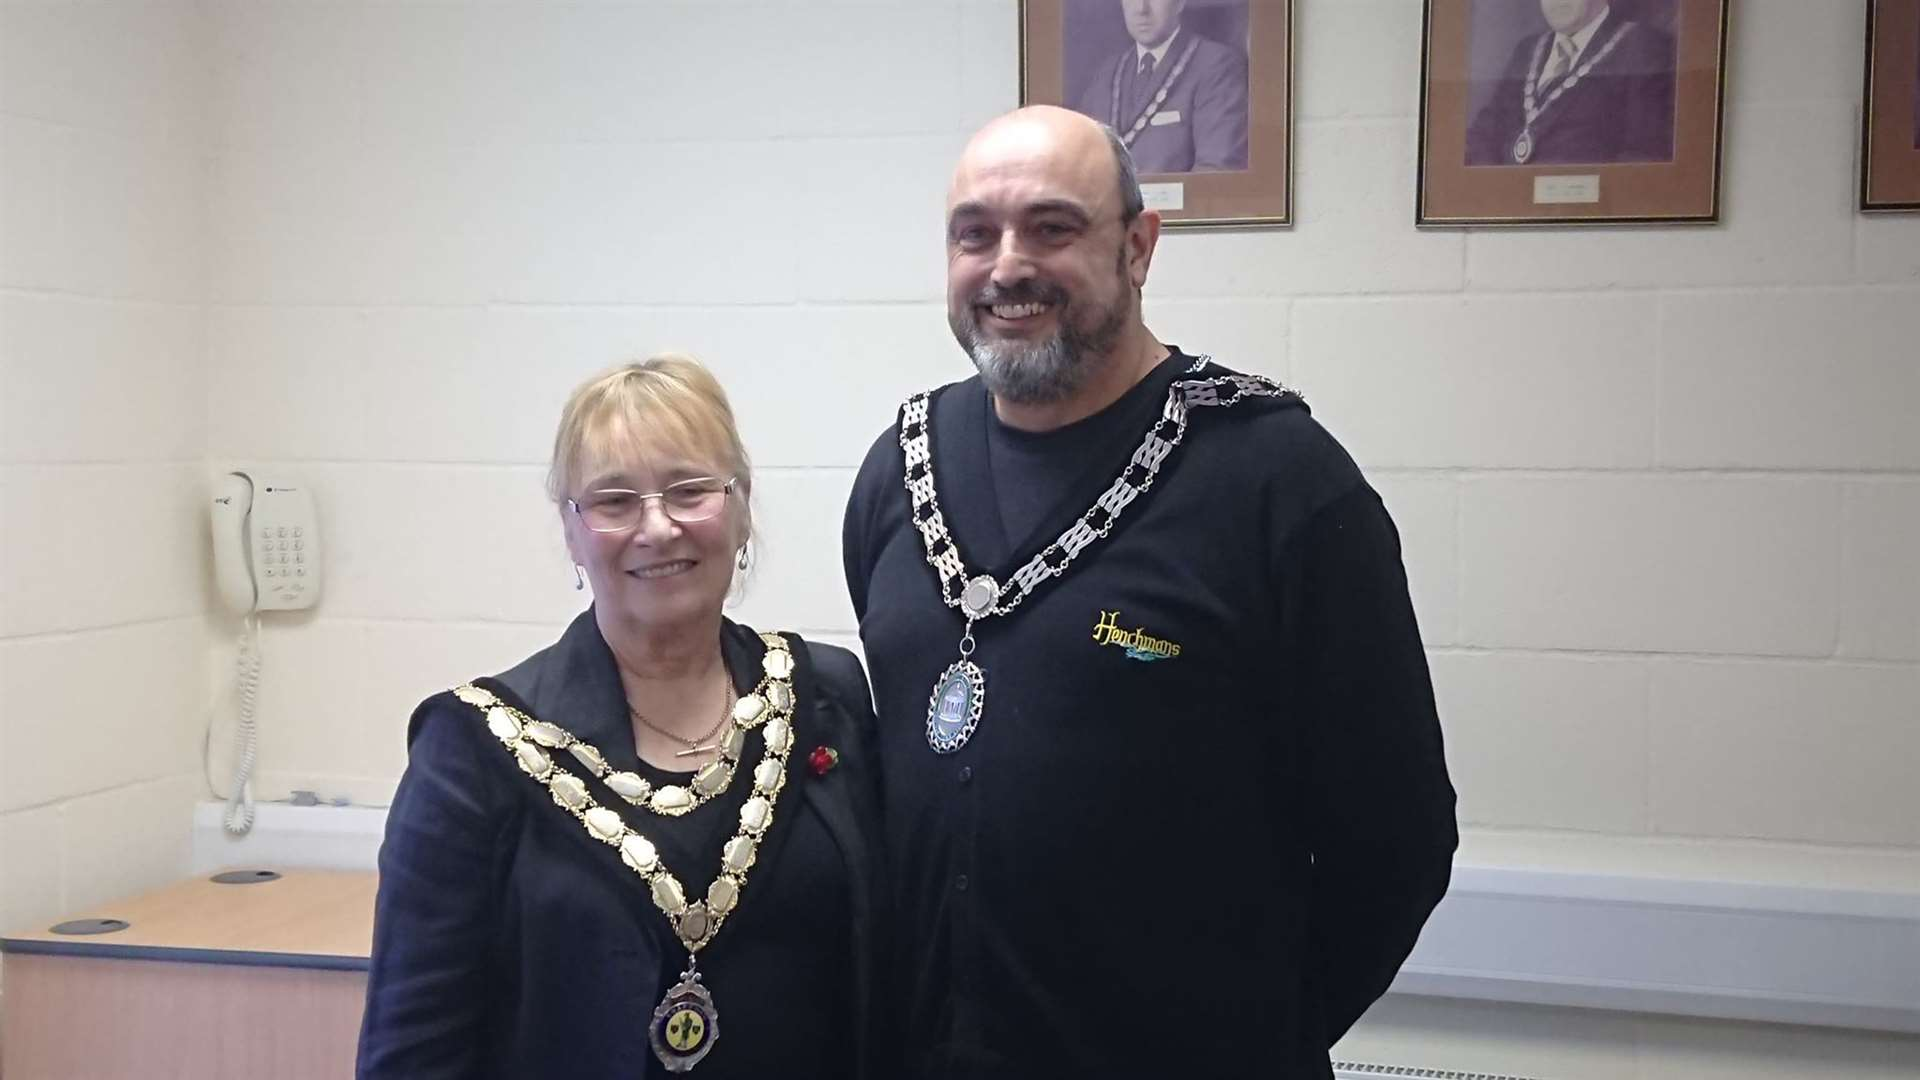 Swaffham mayor Jill Skinner and deputy mayor Keith Sandle